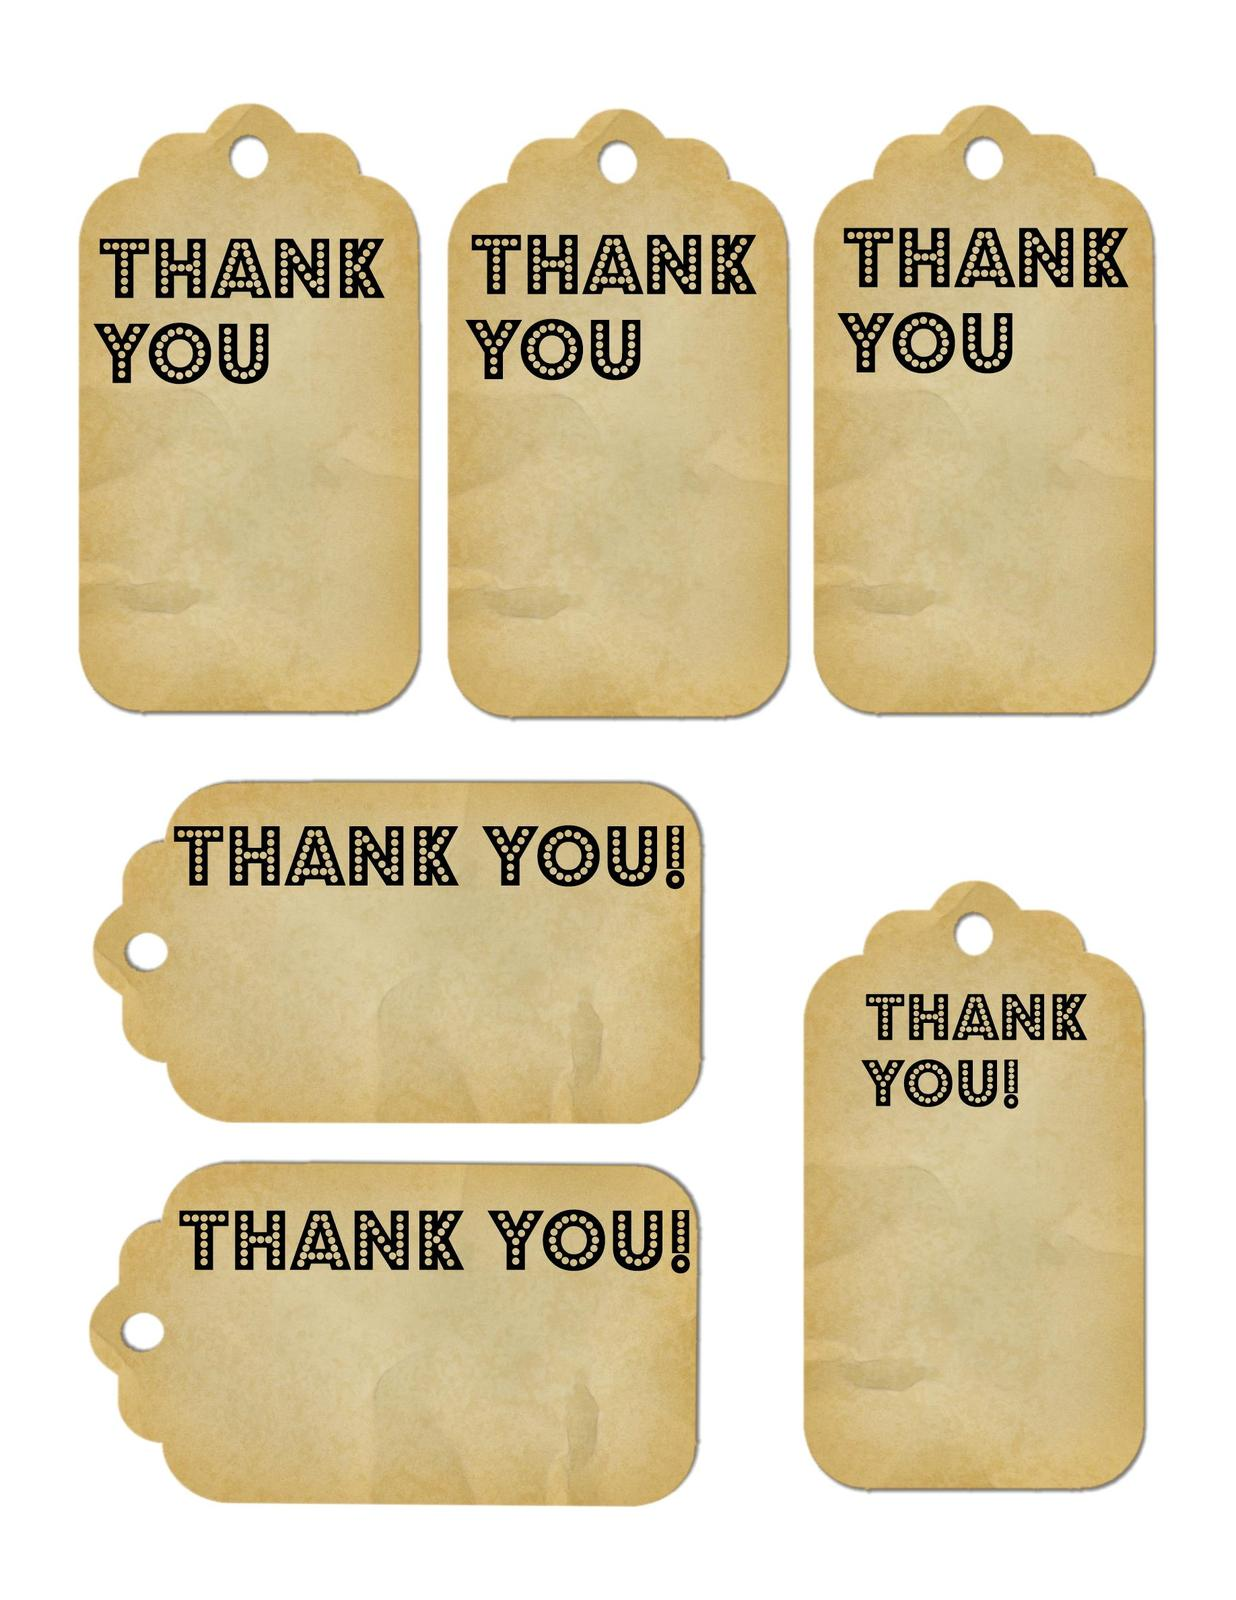 6 thank you tags35